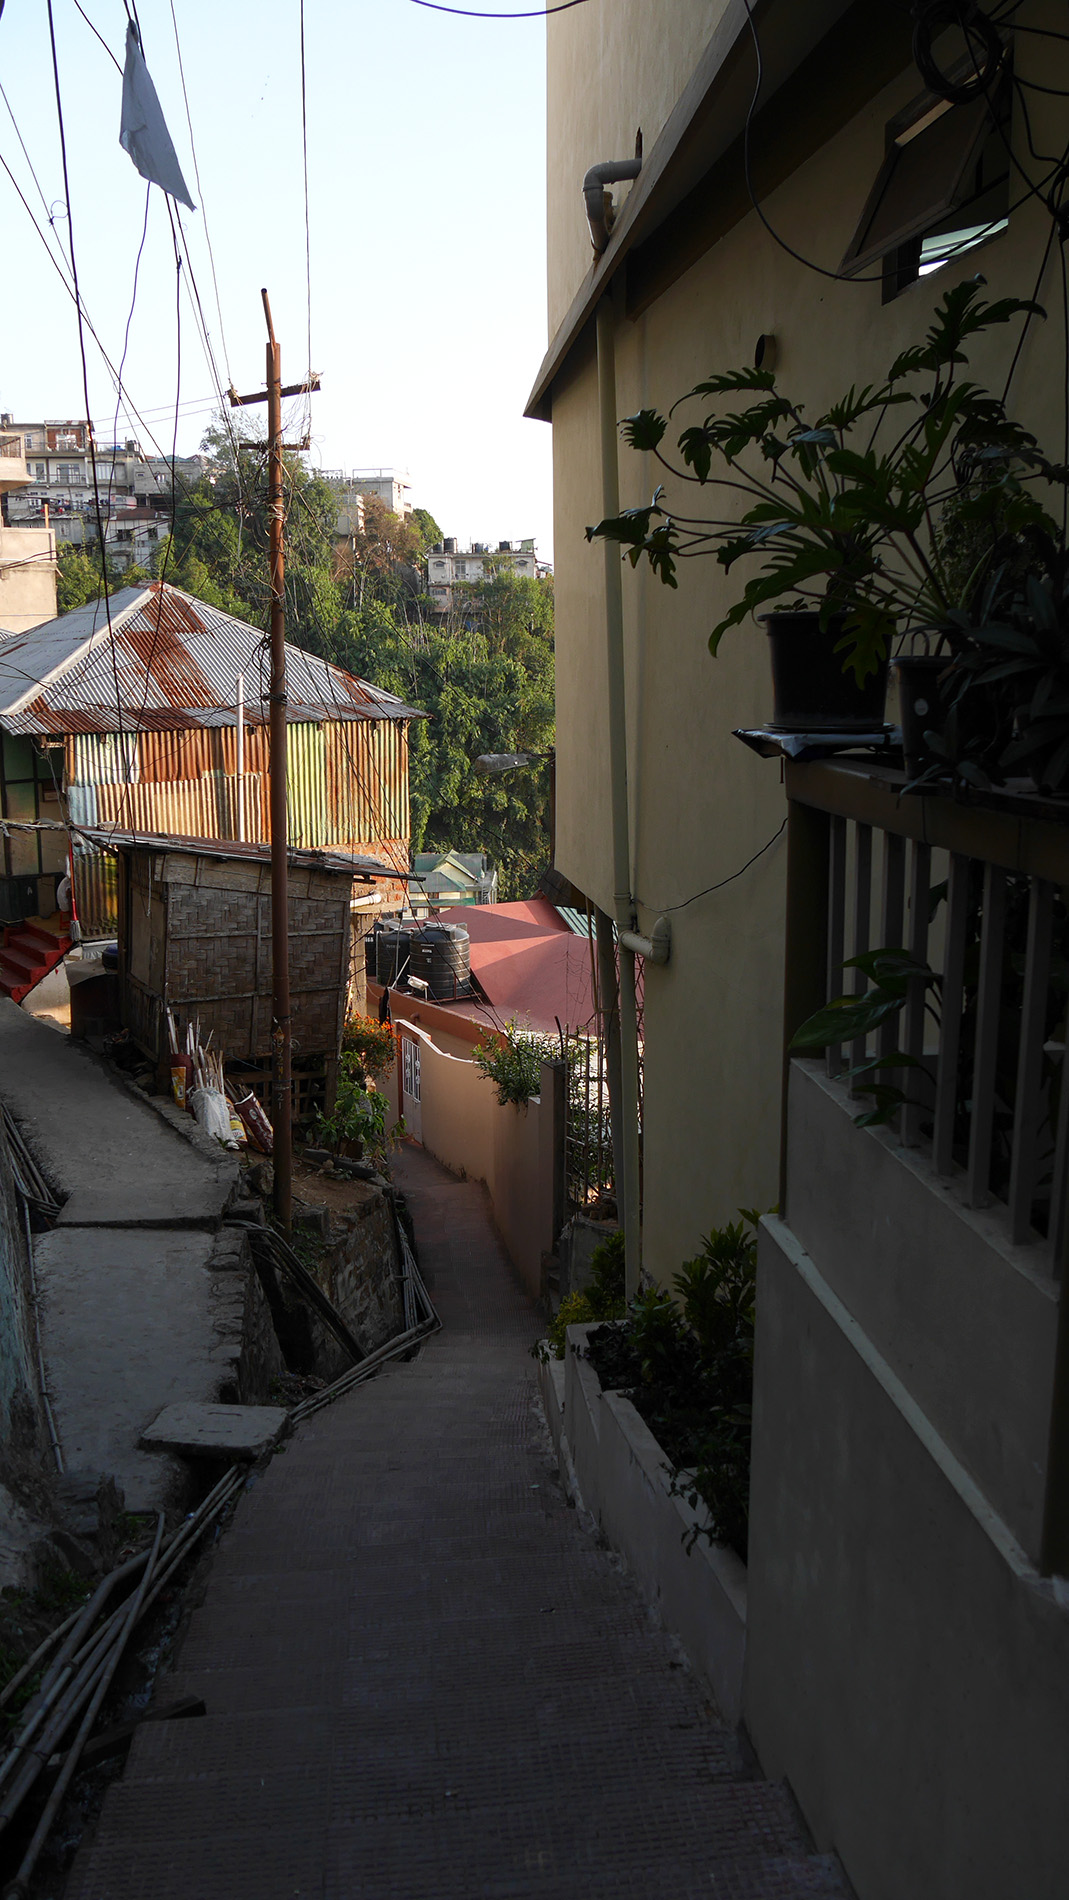 Aizawl is located on the Himalayan foothills, meaning that there are many stairs and a lot of going up and down in the city